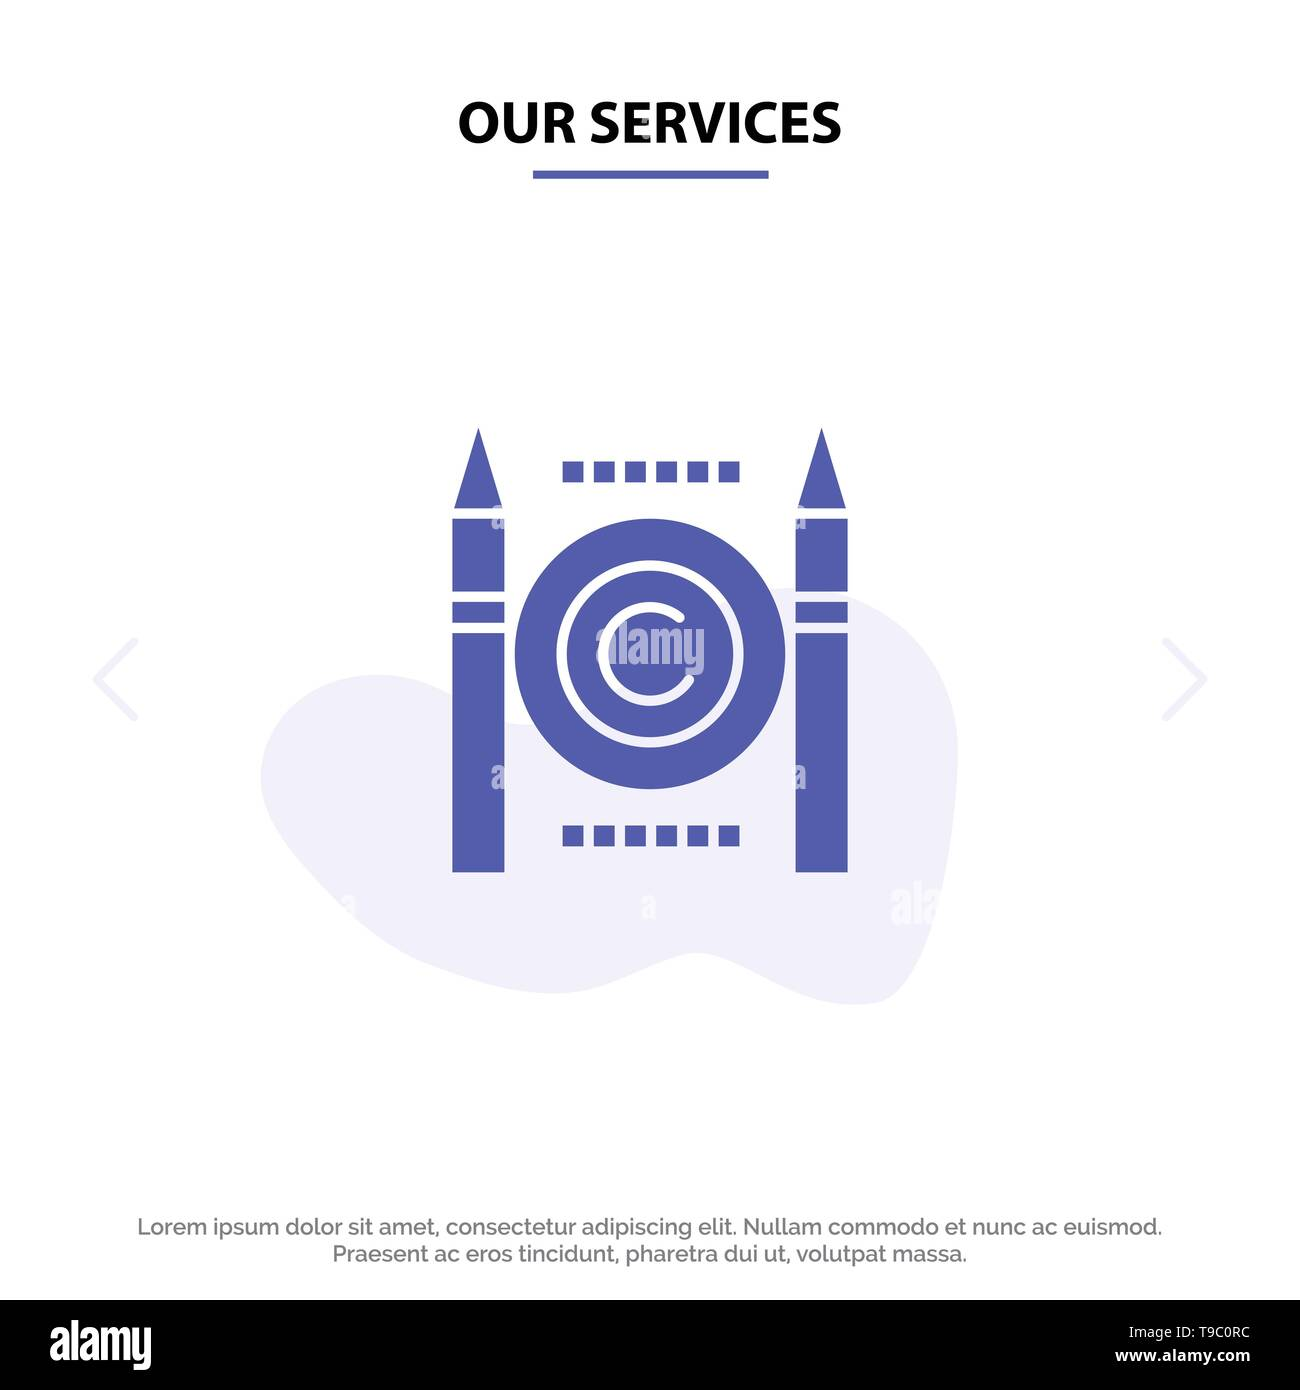 Our Services Business, Conflict, Copyright, Digital Solid Glyph Icon Web card Template - Stock Image